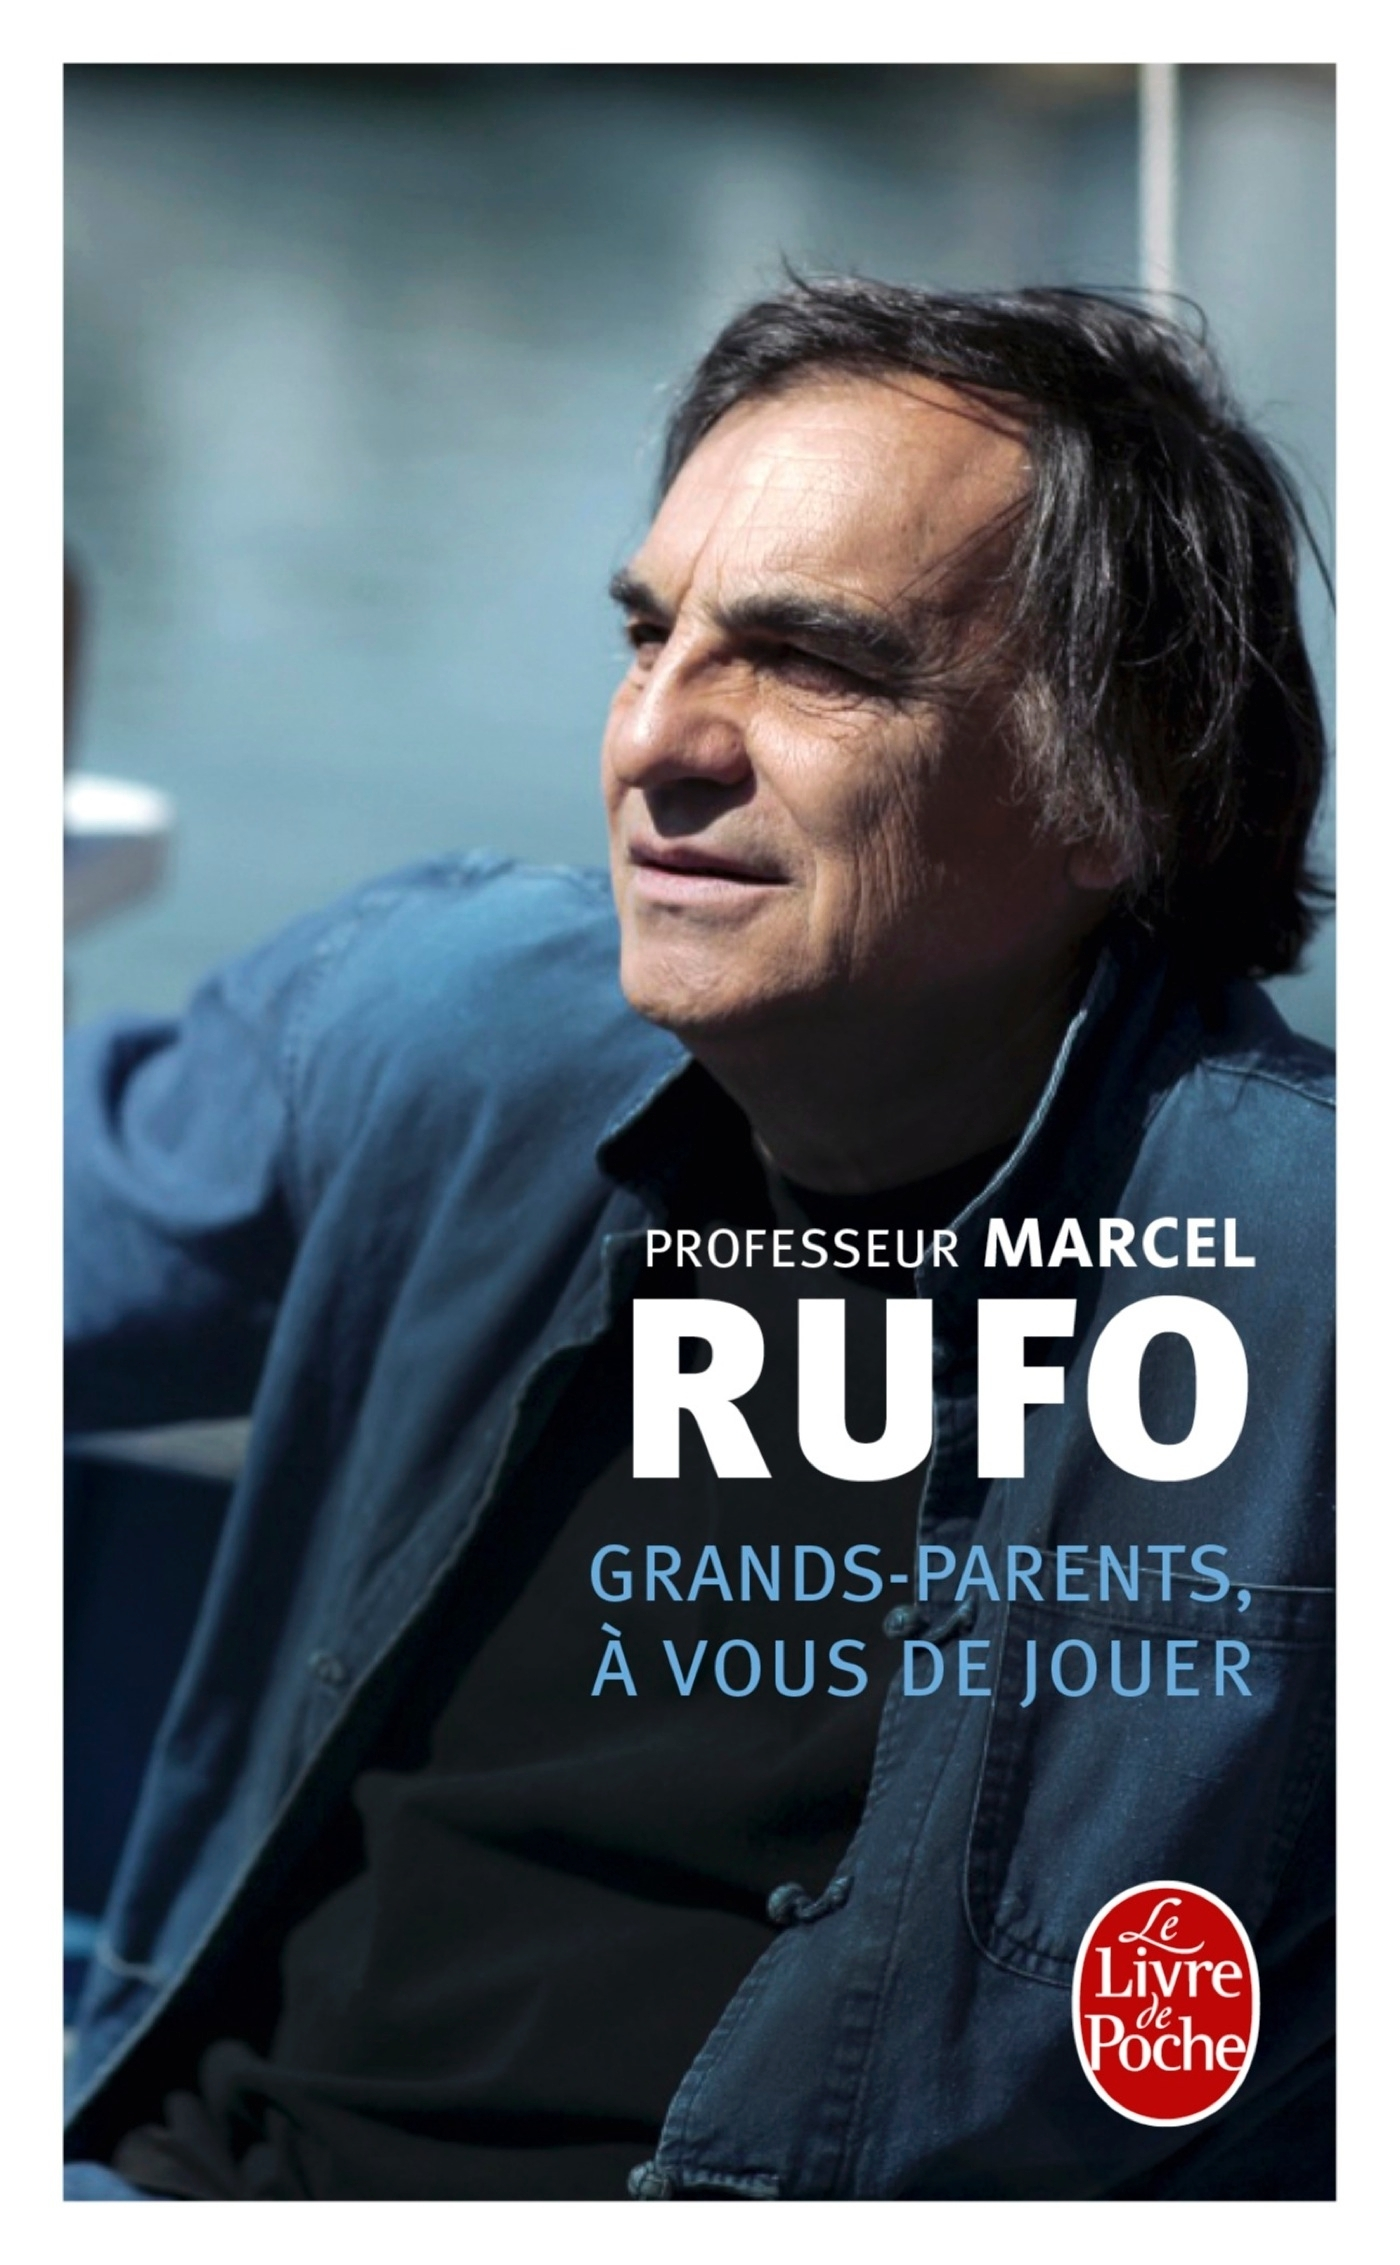 GRANDS-PARENTS, A VOUS DE JOUER